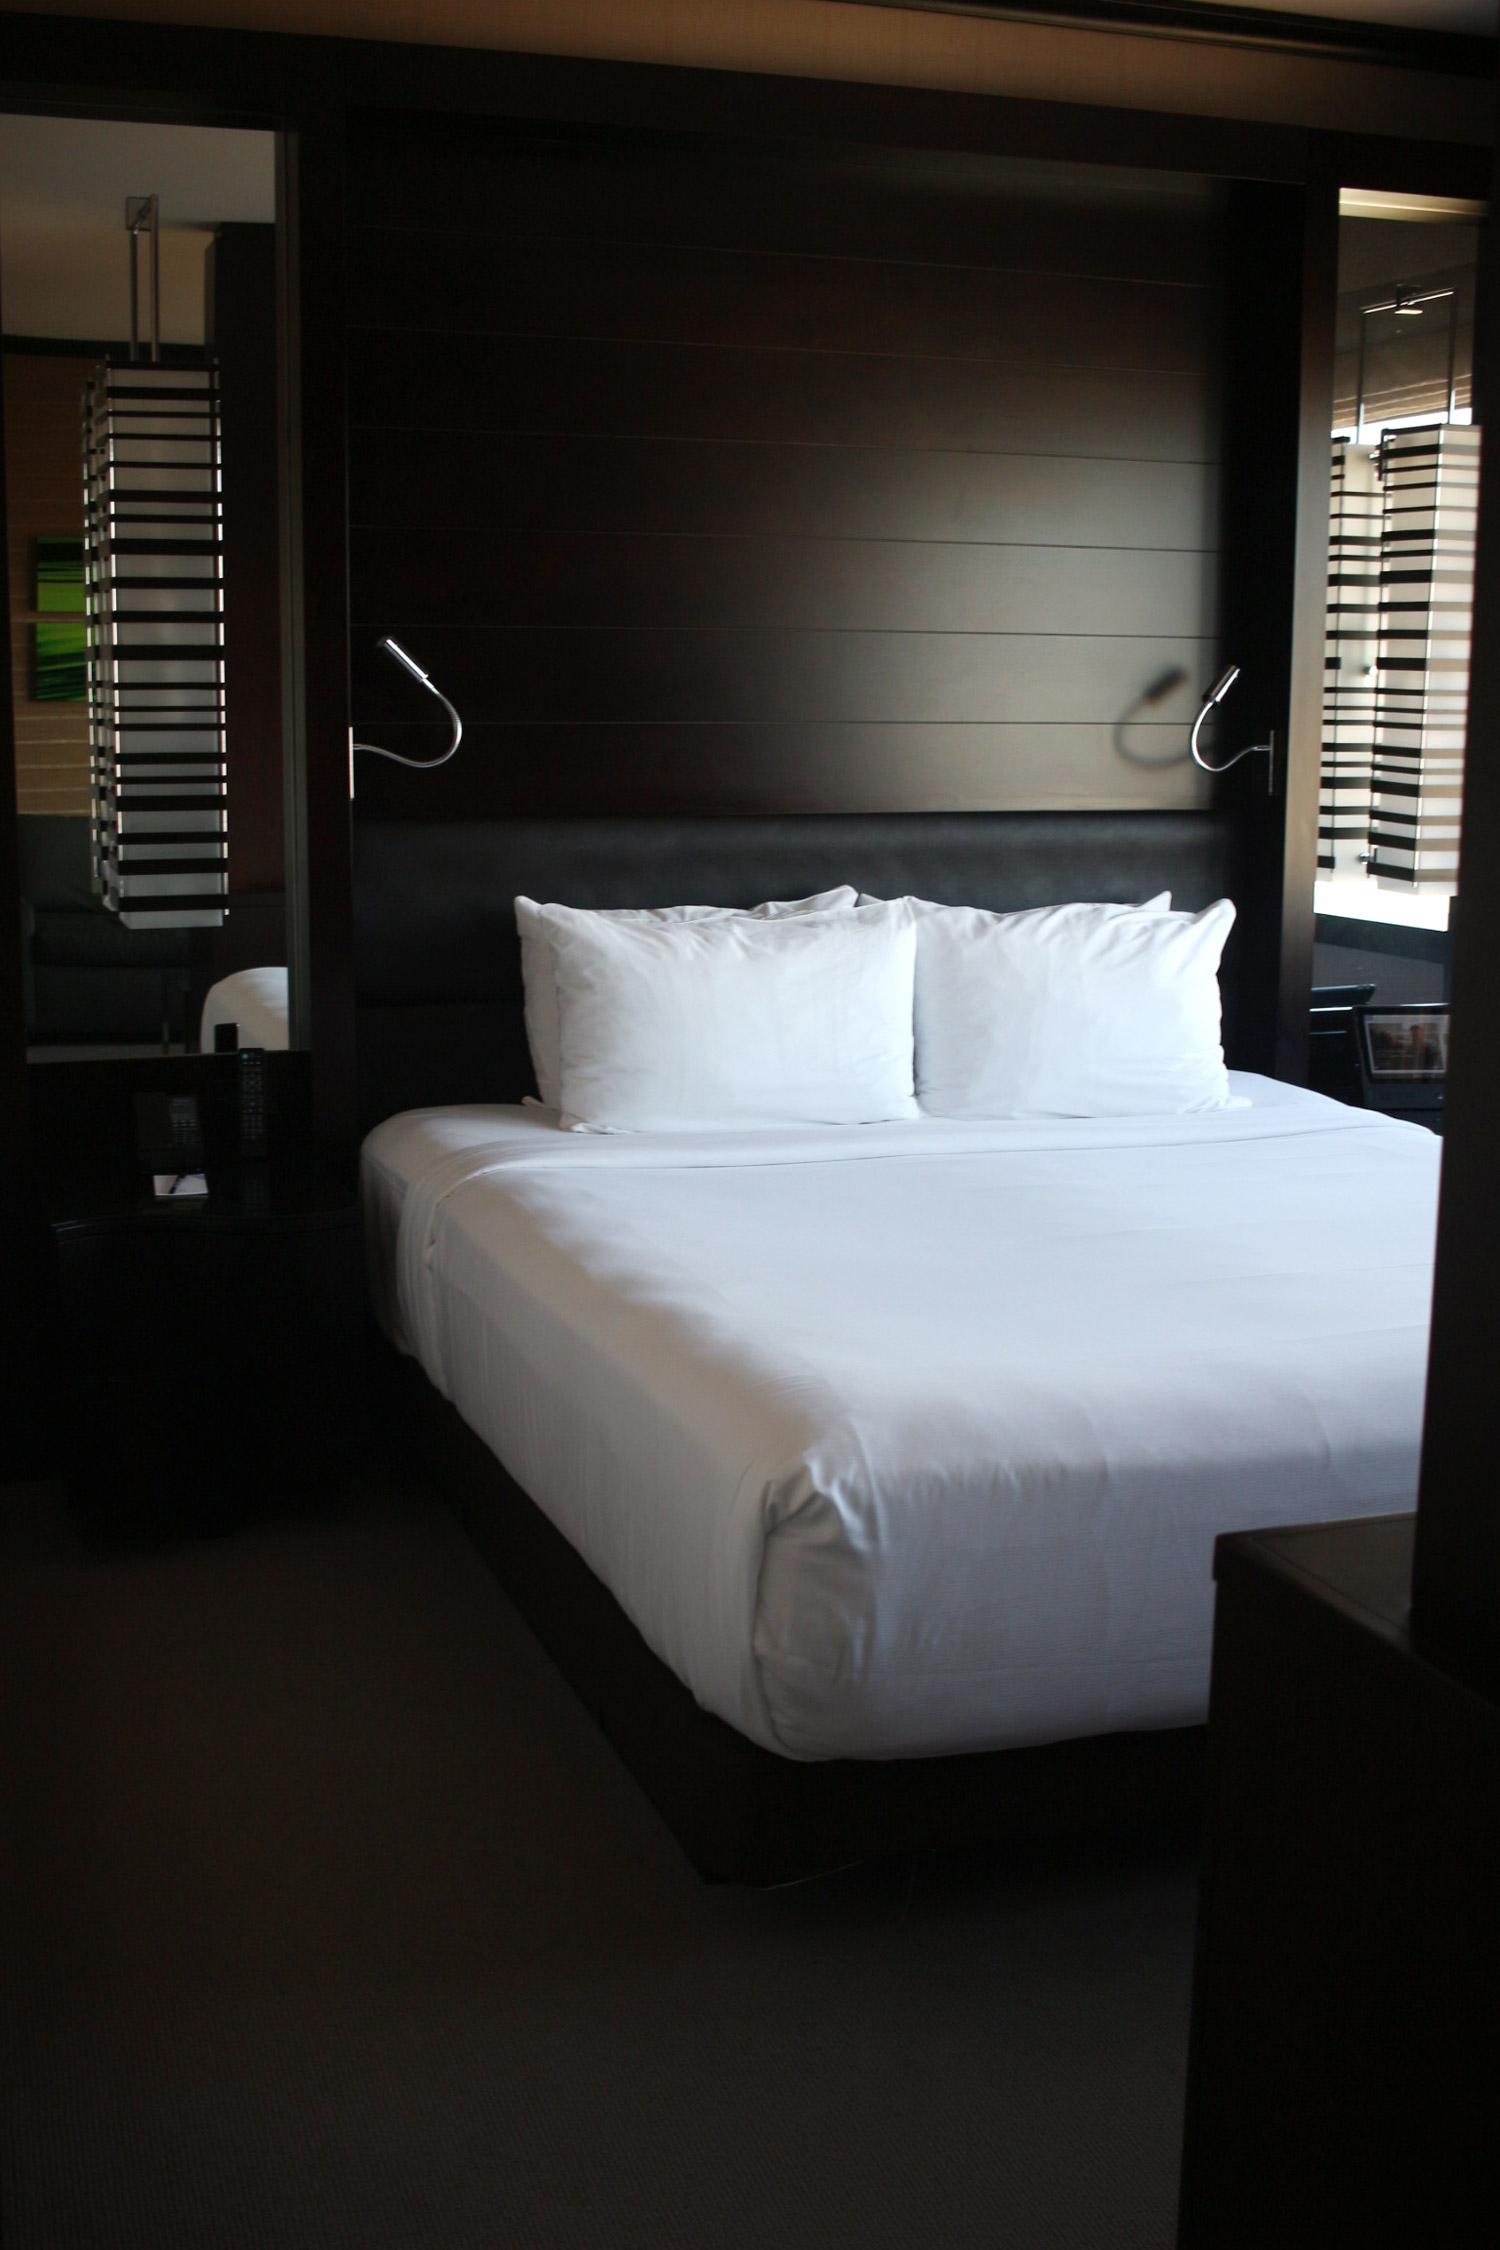 las-vegas-vdara-studio-parlour-double-room-review-5